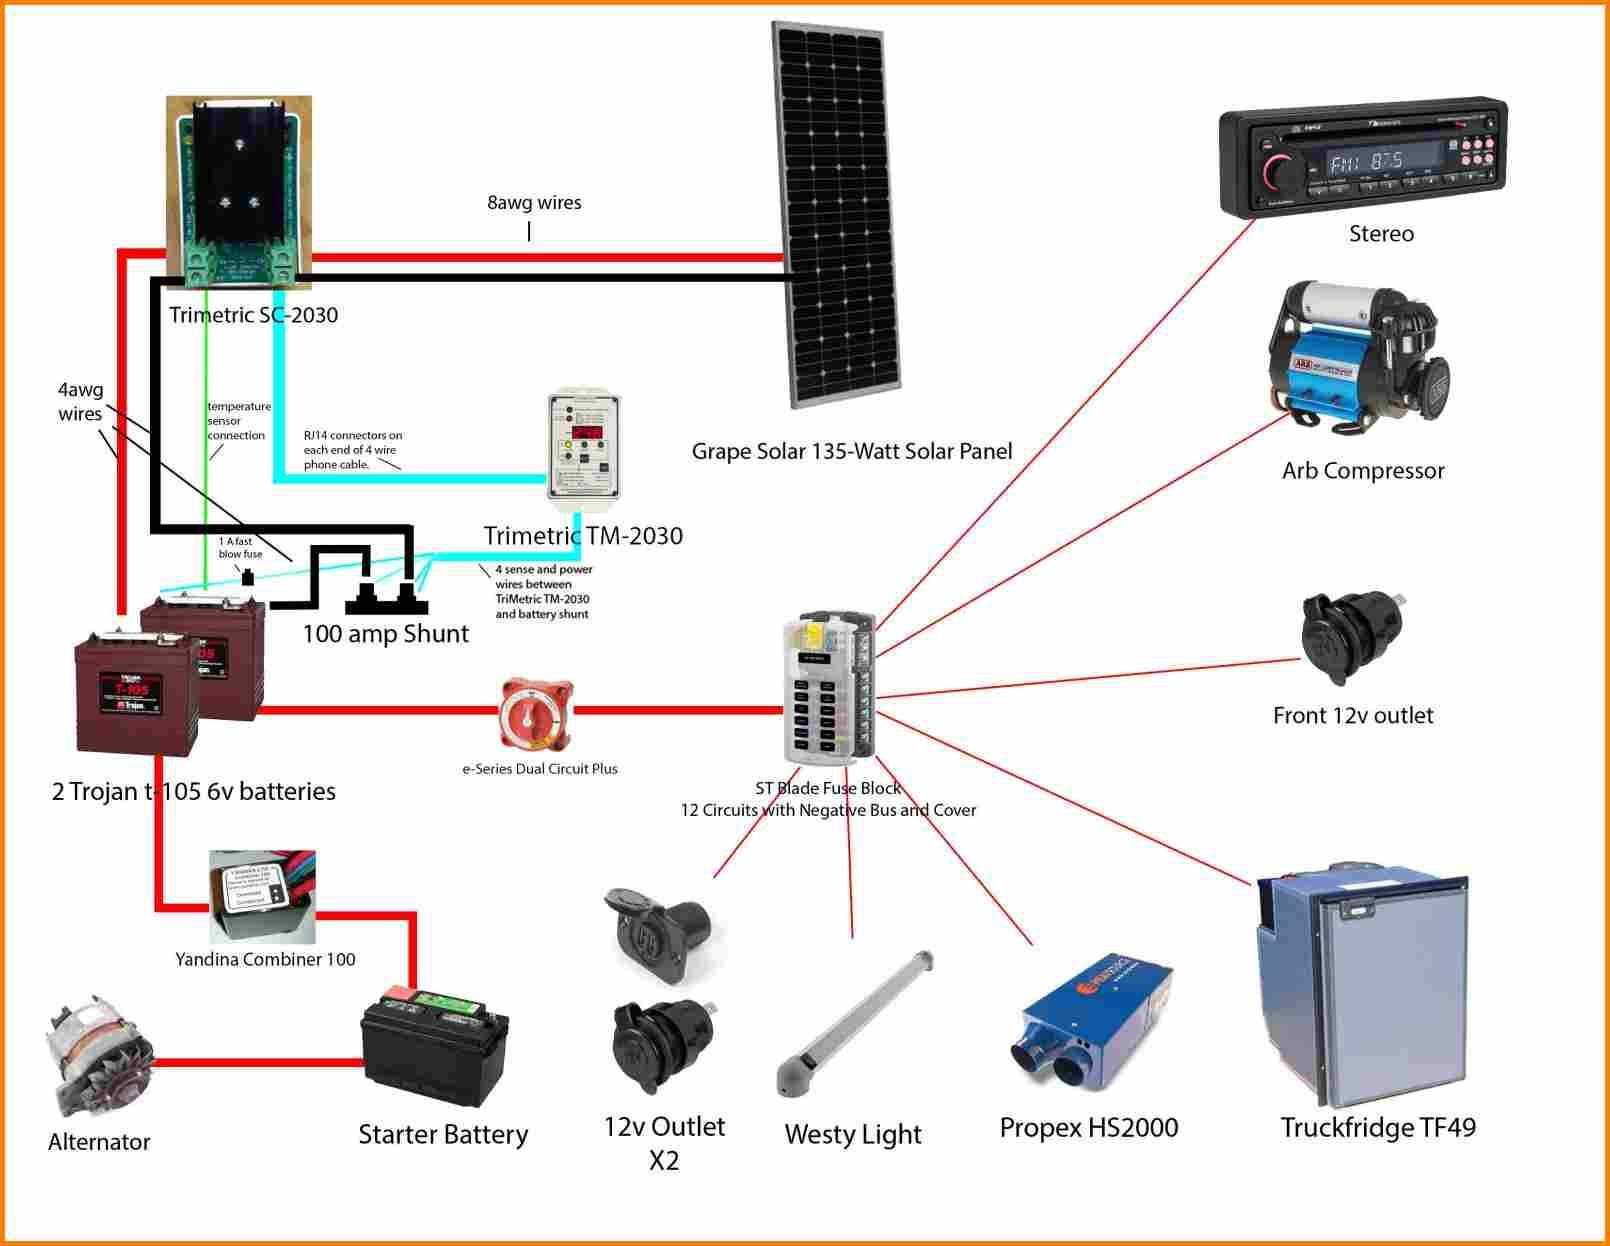 Solar Panel Wiring Diagram Awesome 10 Boat Solar Panel Wiring Diagram Solar Panels Small Solar Panels Solar Panel Cost